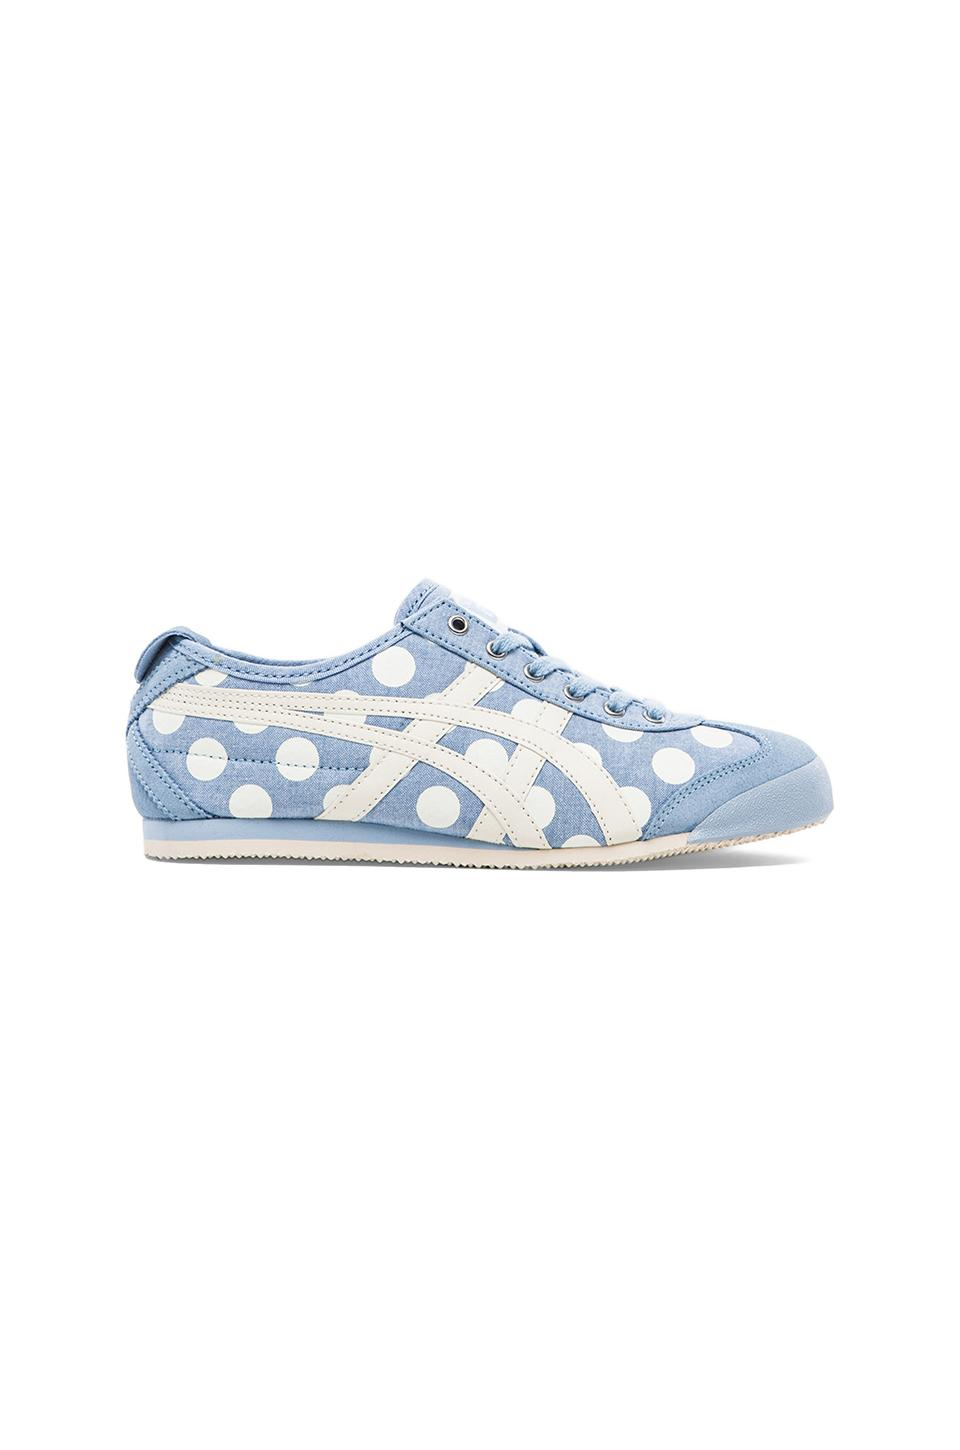 Onitsuka Tiger Mexico 66 Sneaker in Baby Blue